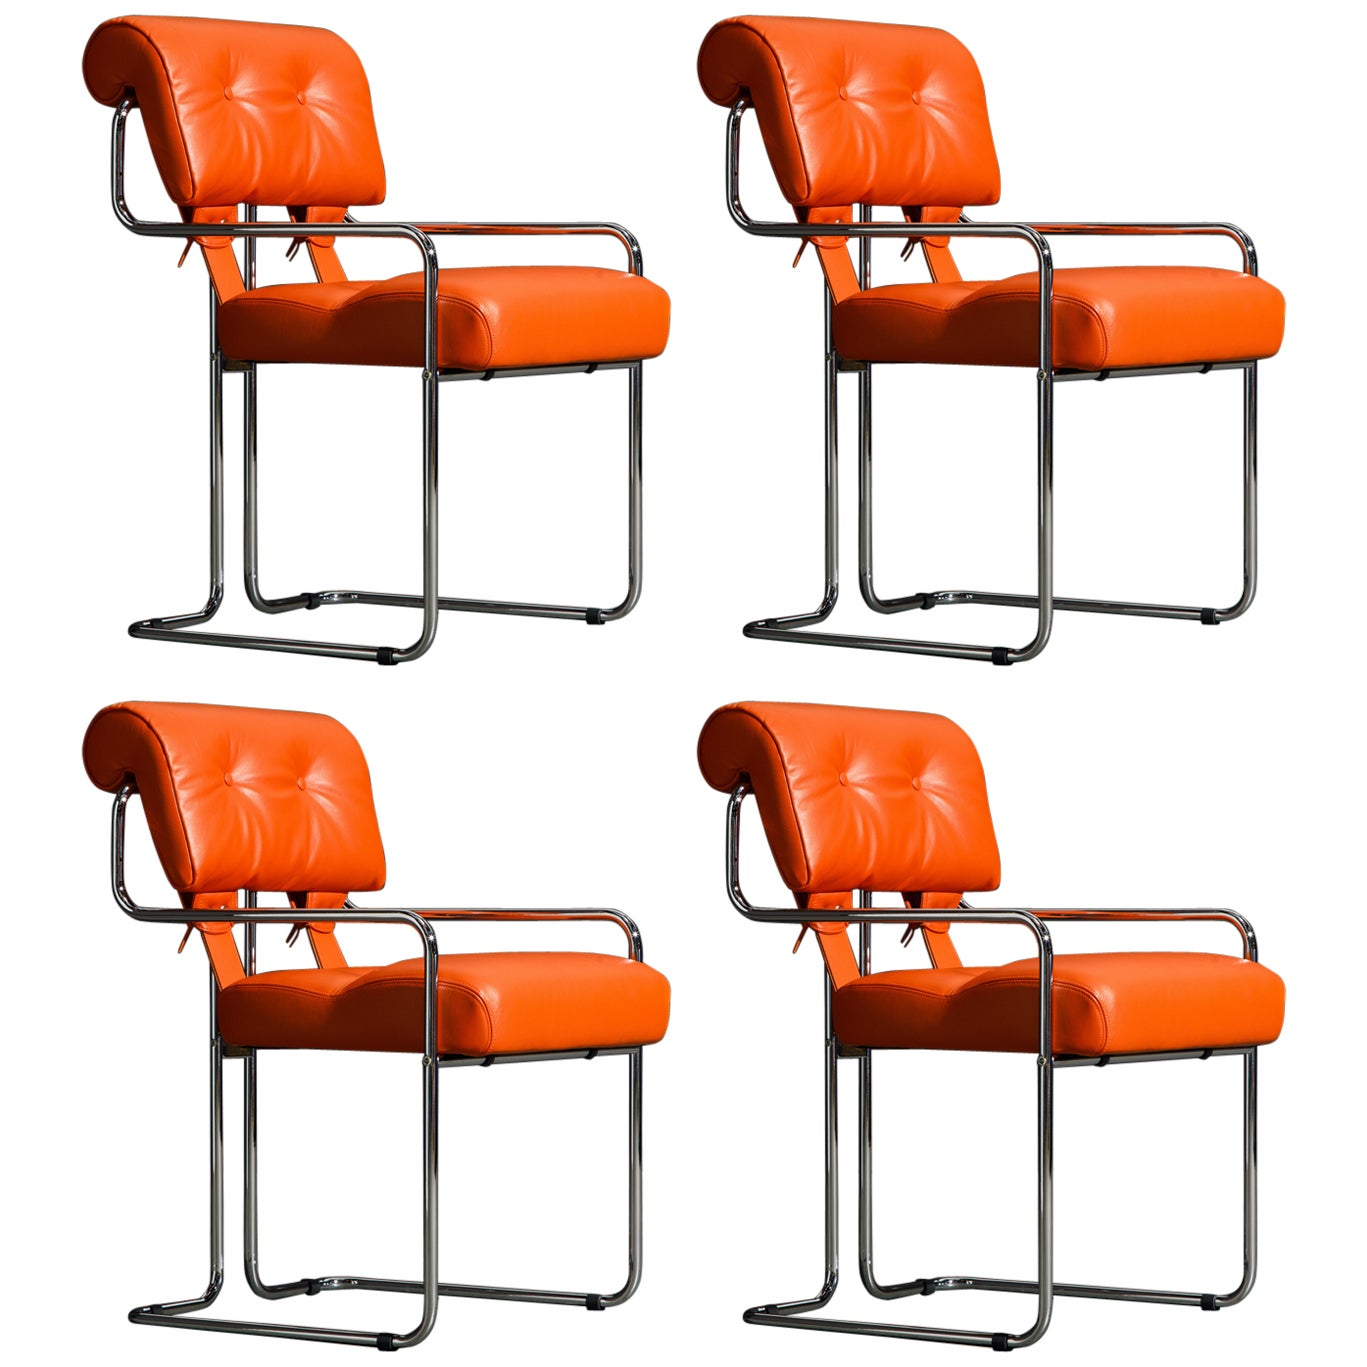 Set of Four Orange Leather Tucroma Chairs by Guido Faleschini for Mariani, New